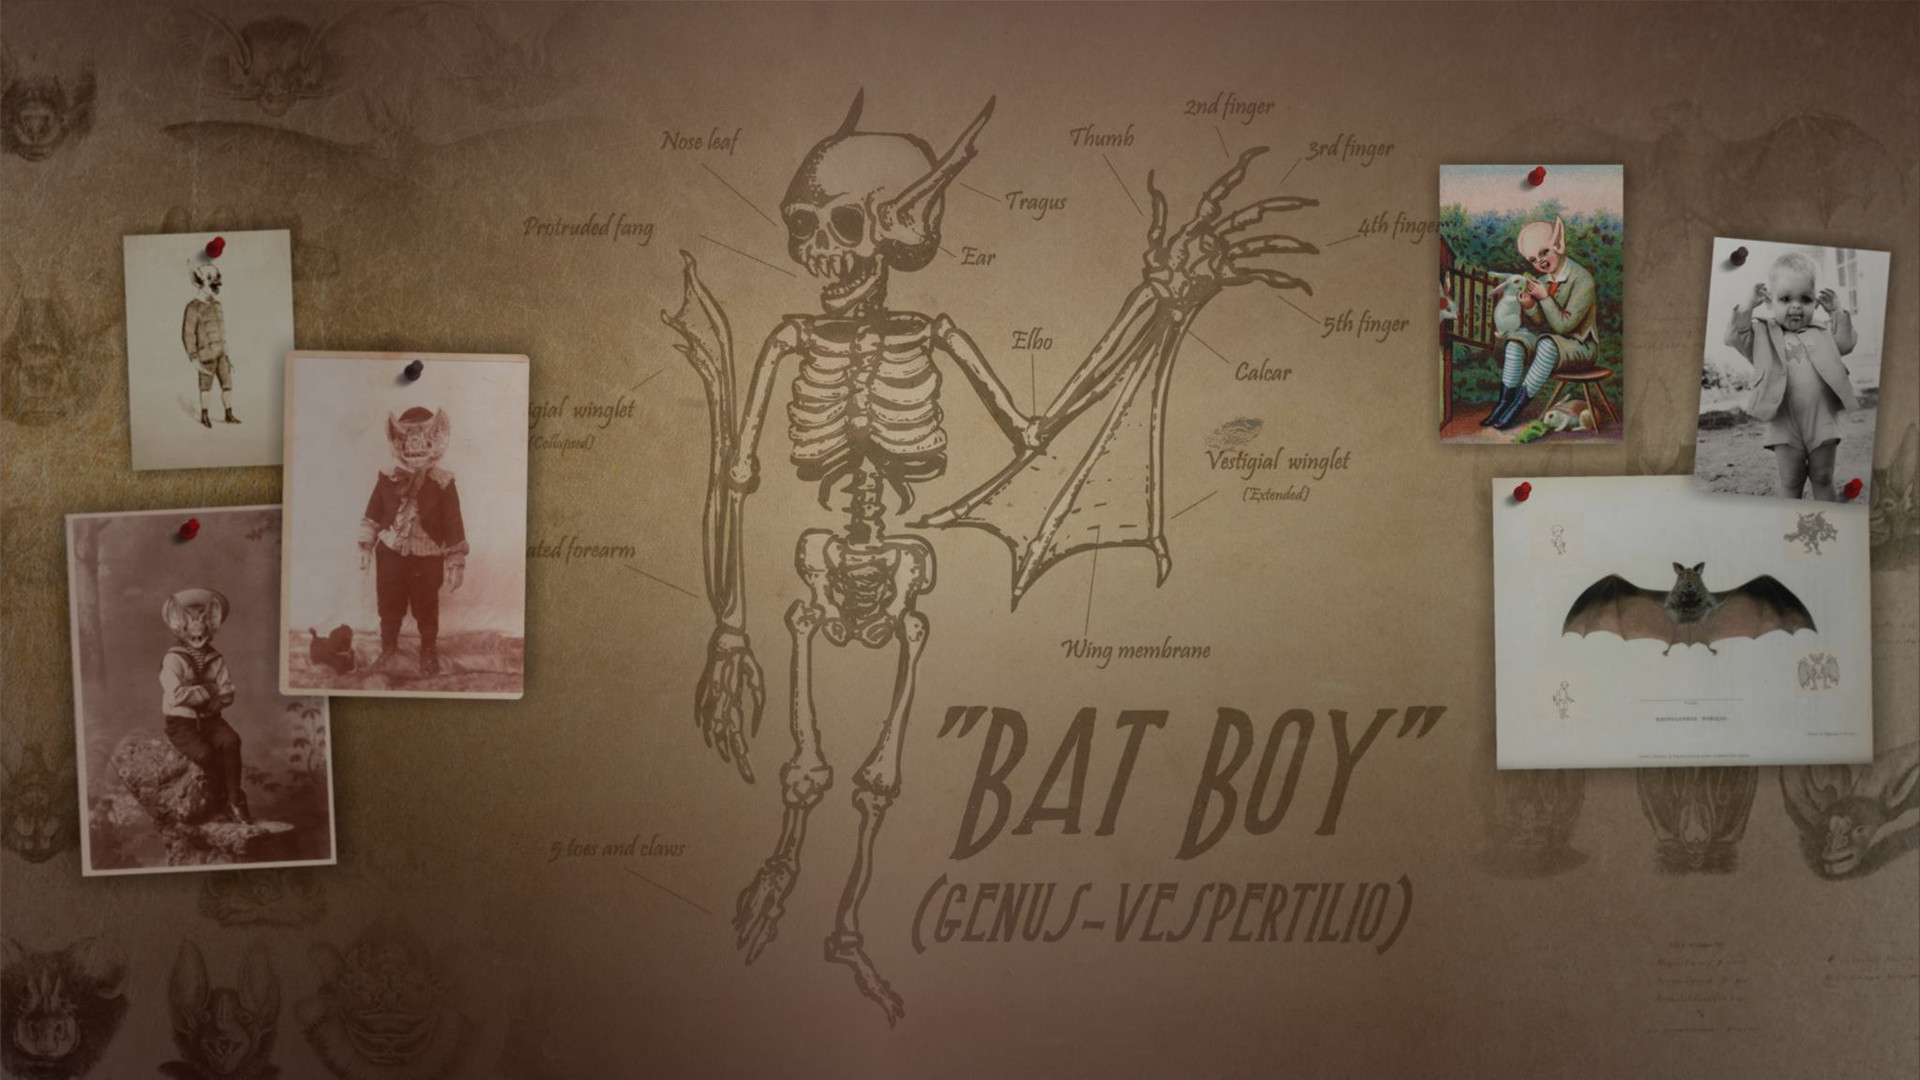 Bat Boy Production Art